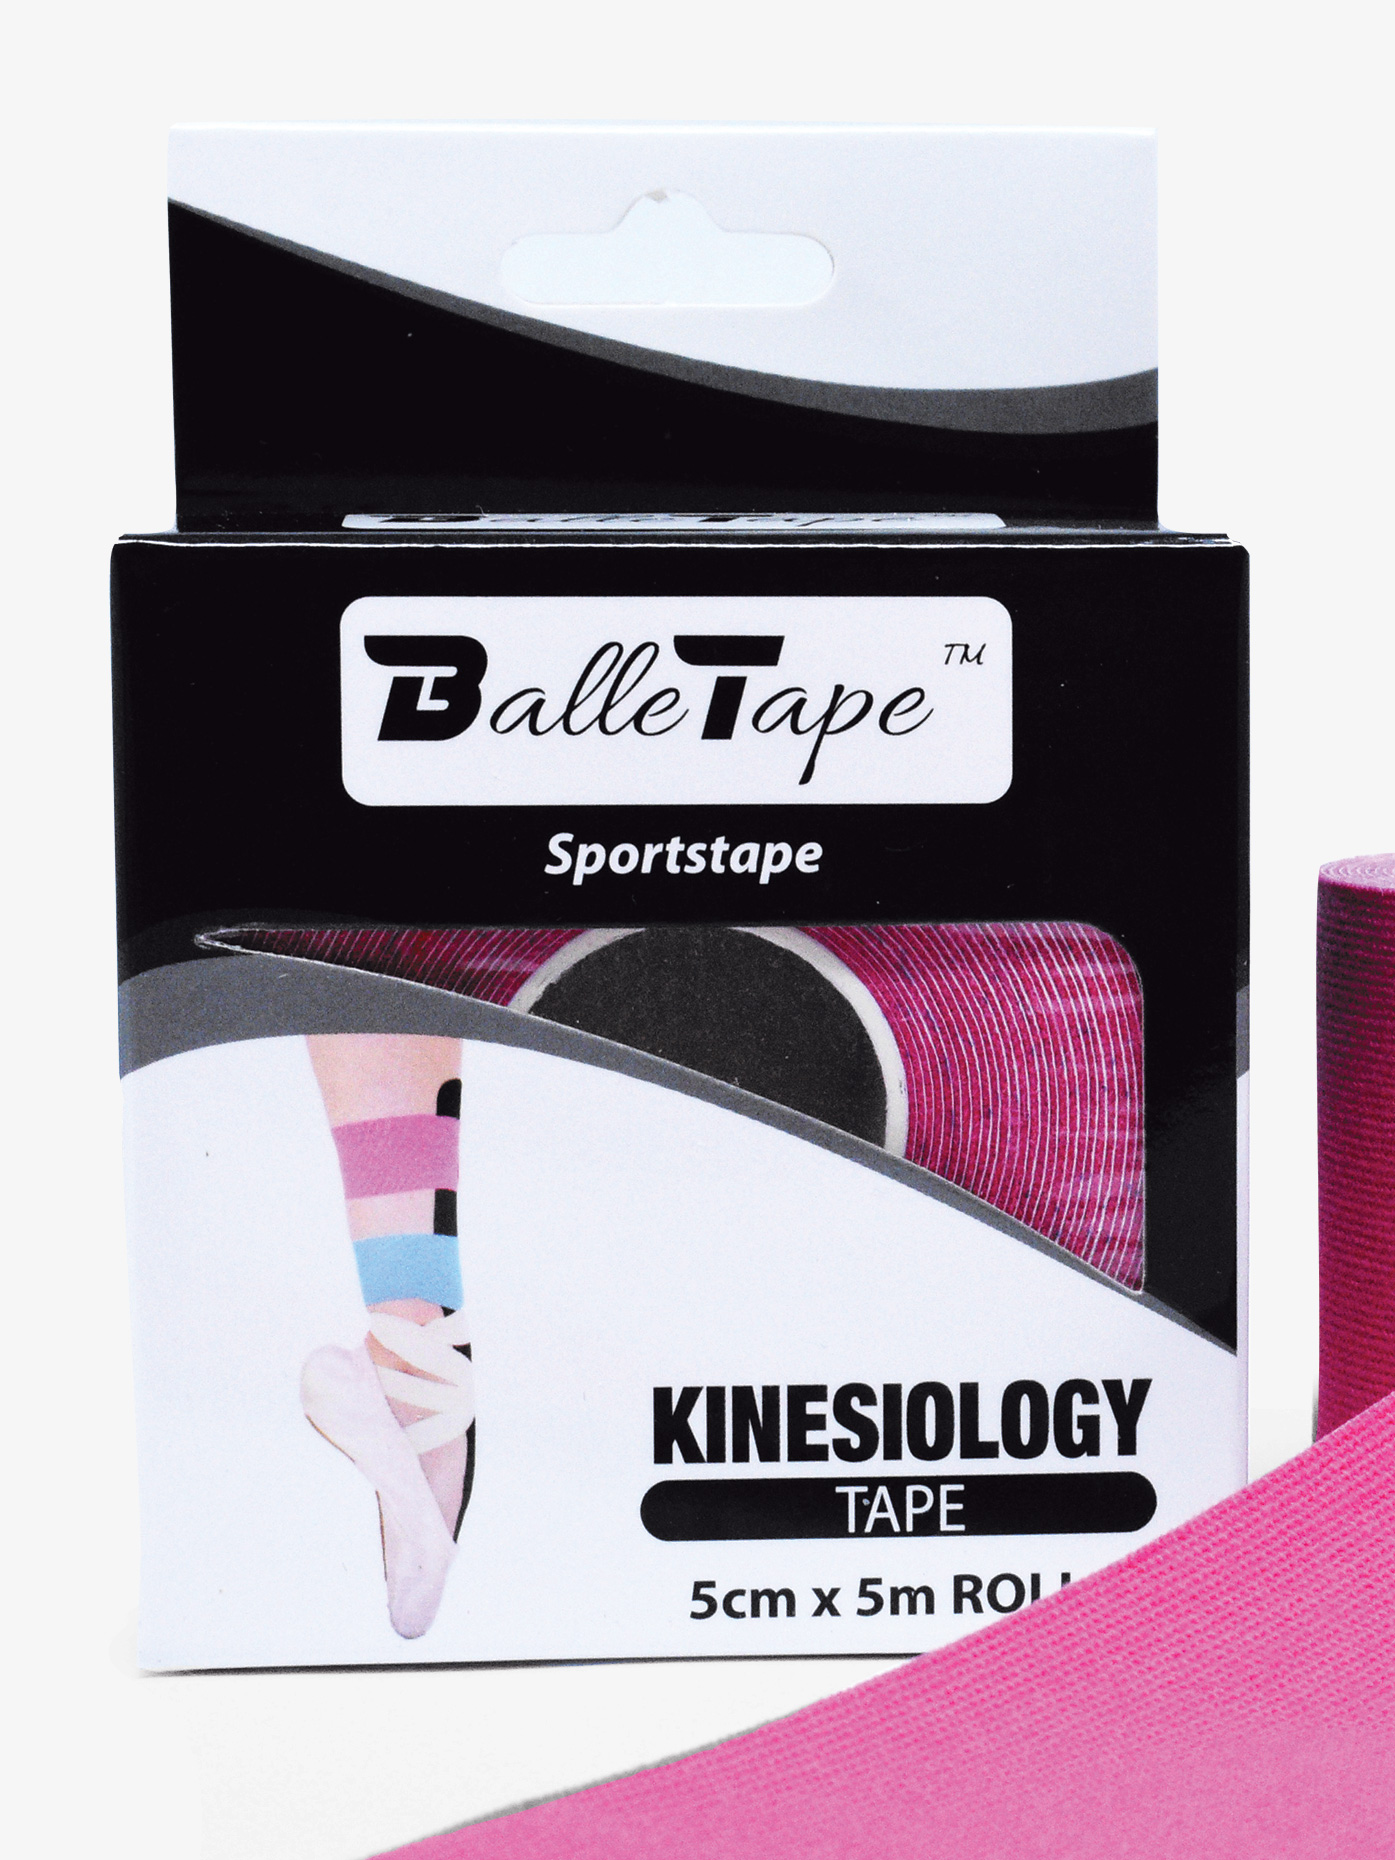 balletape_4.jpg main zoom image